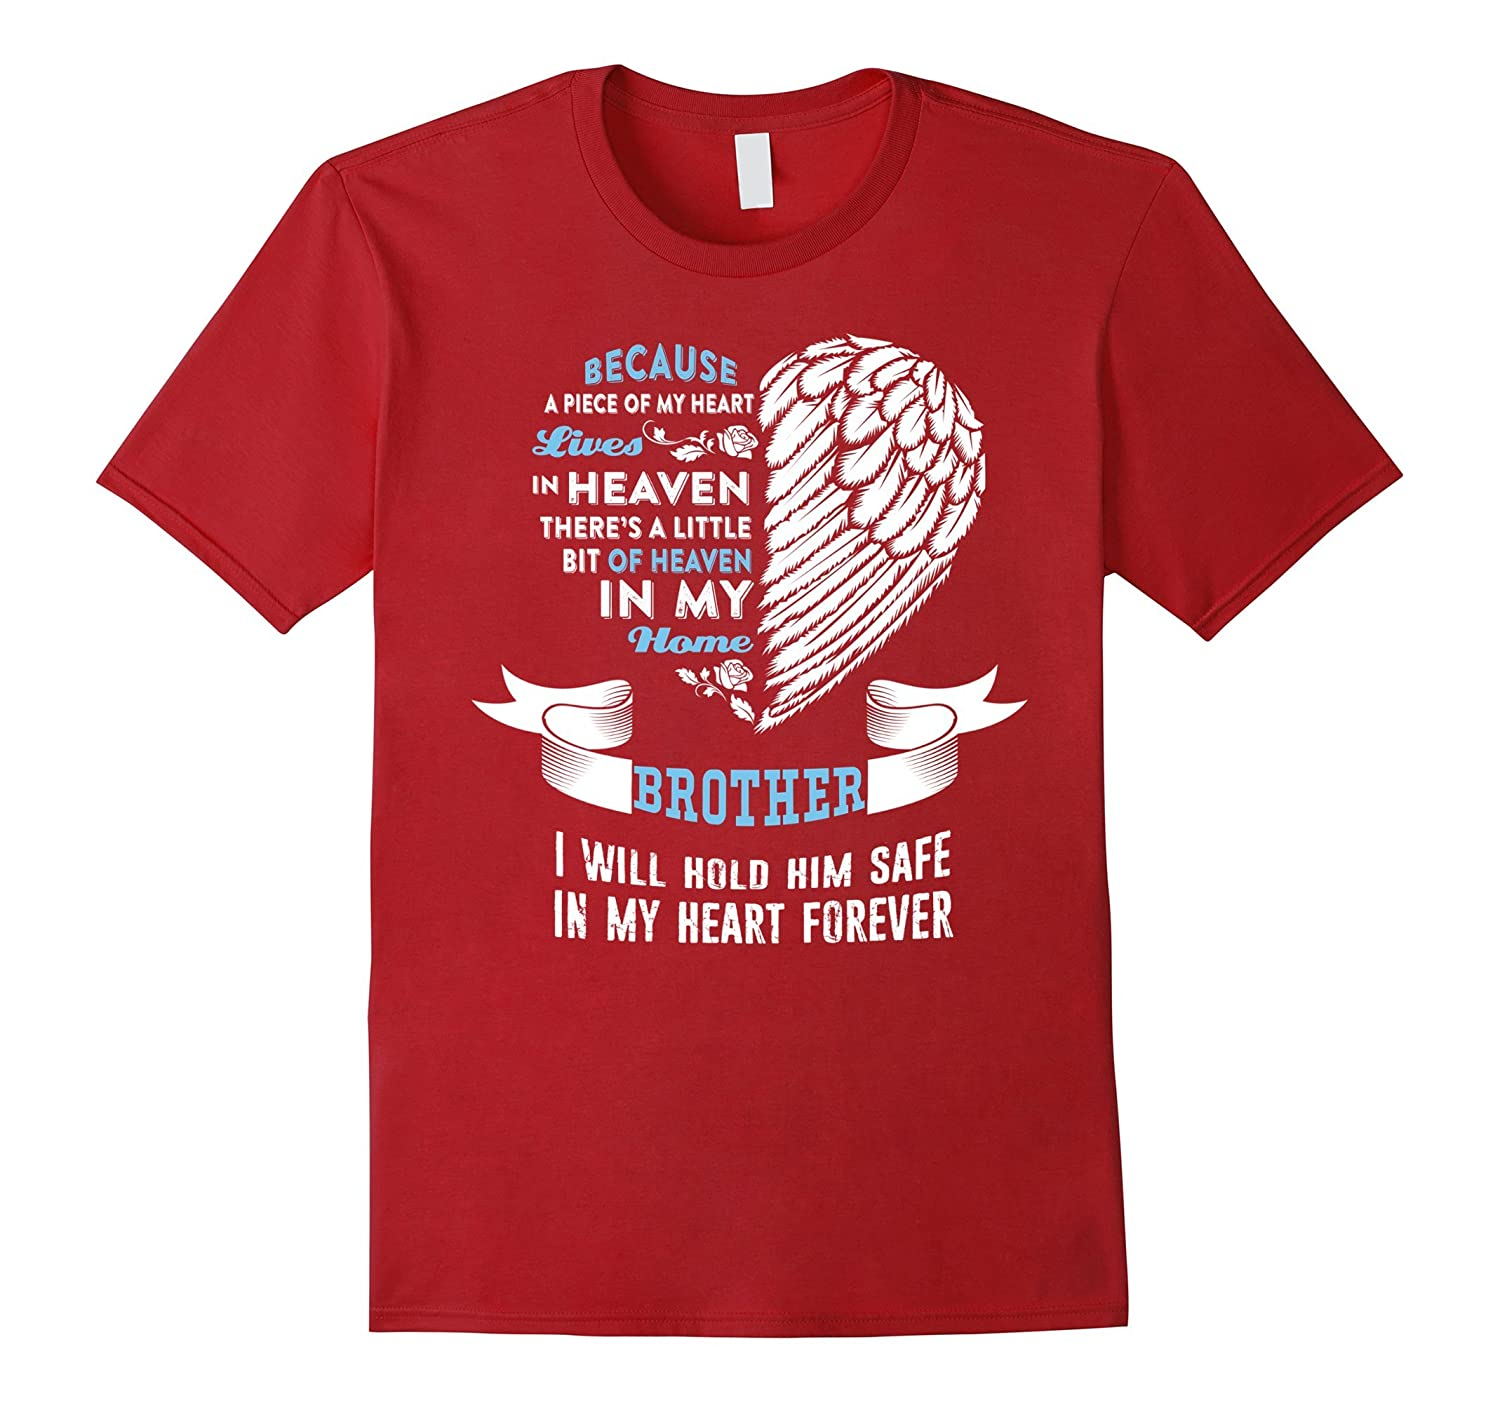 BROTHER MEMORIAL T SHIRT HE LIVES IN HEAVEN MY HOME MY HEART-BN